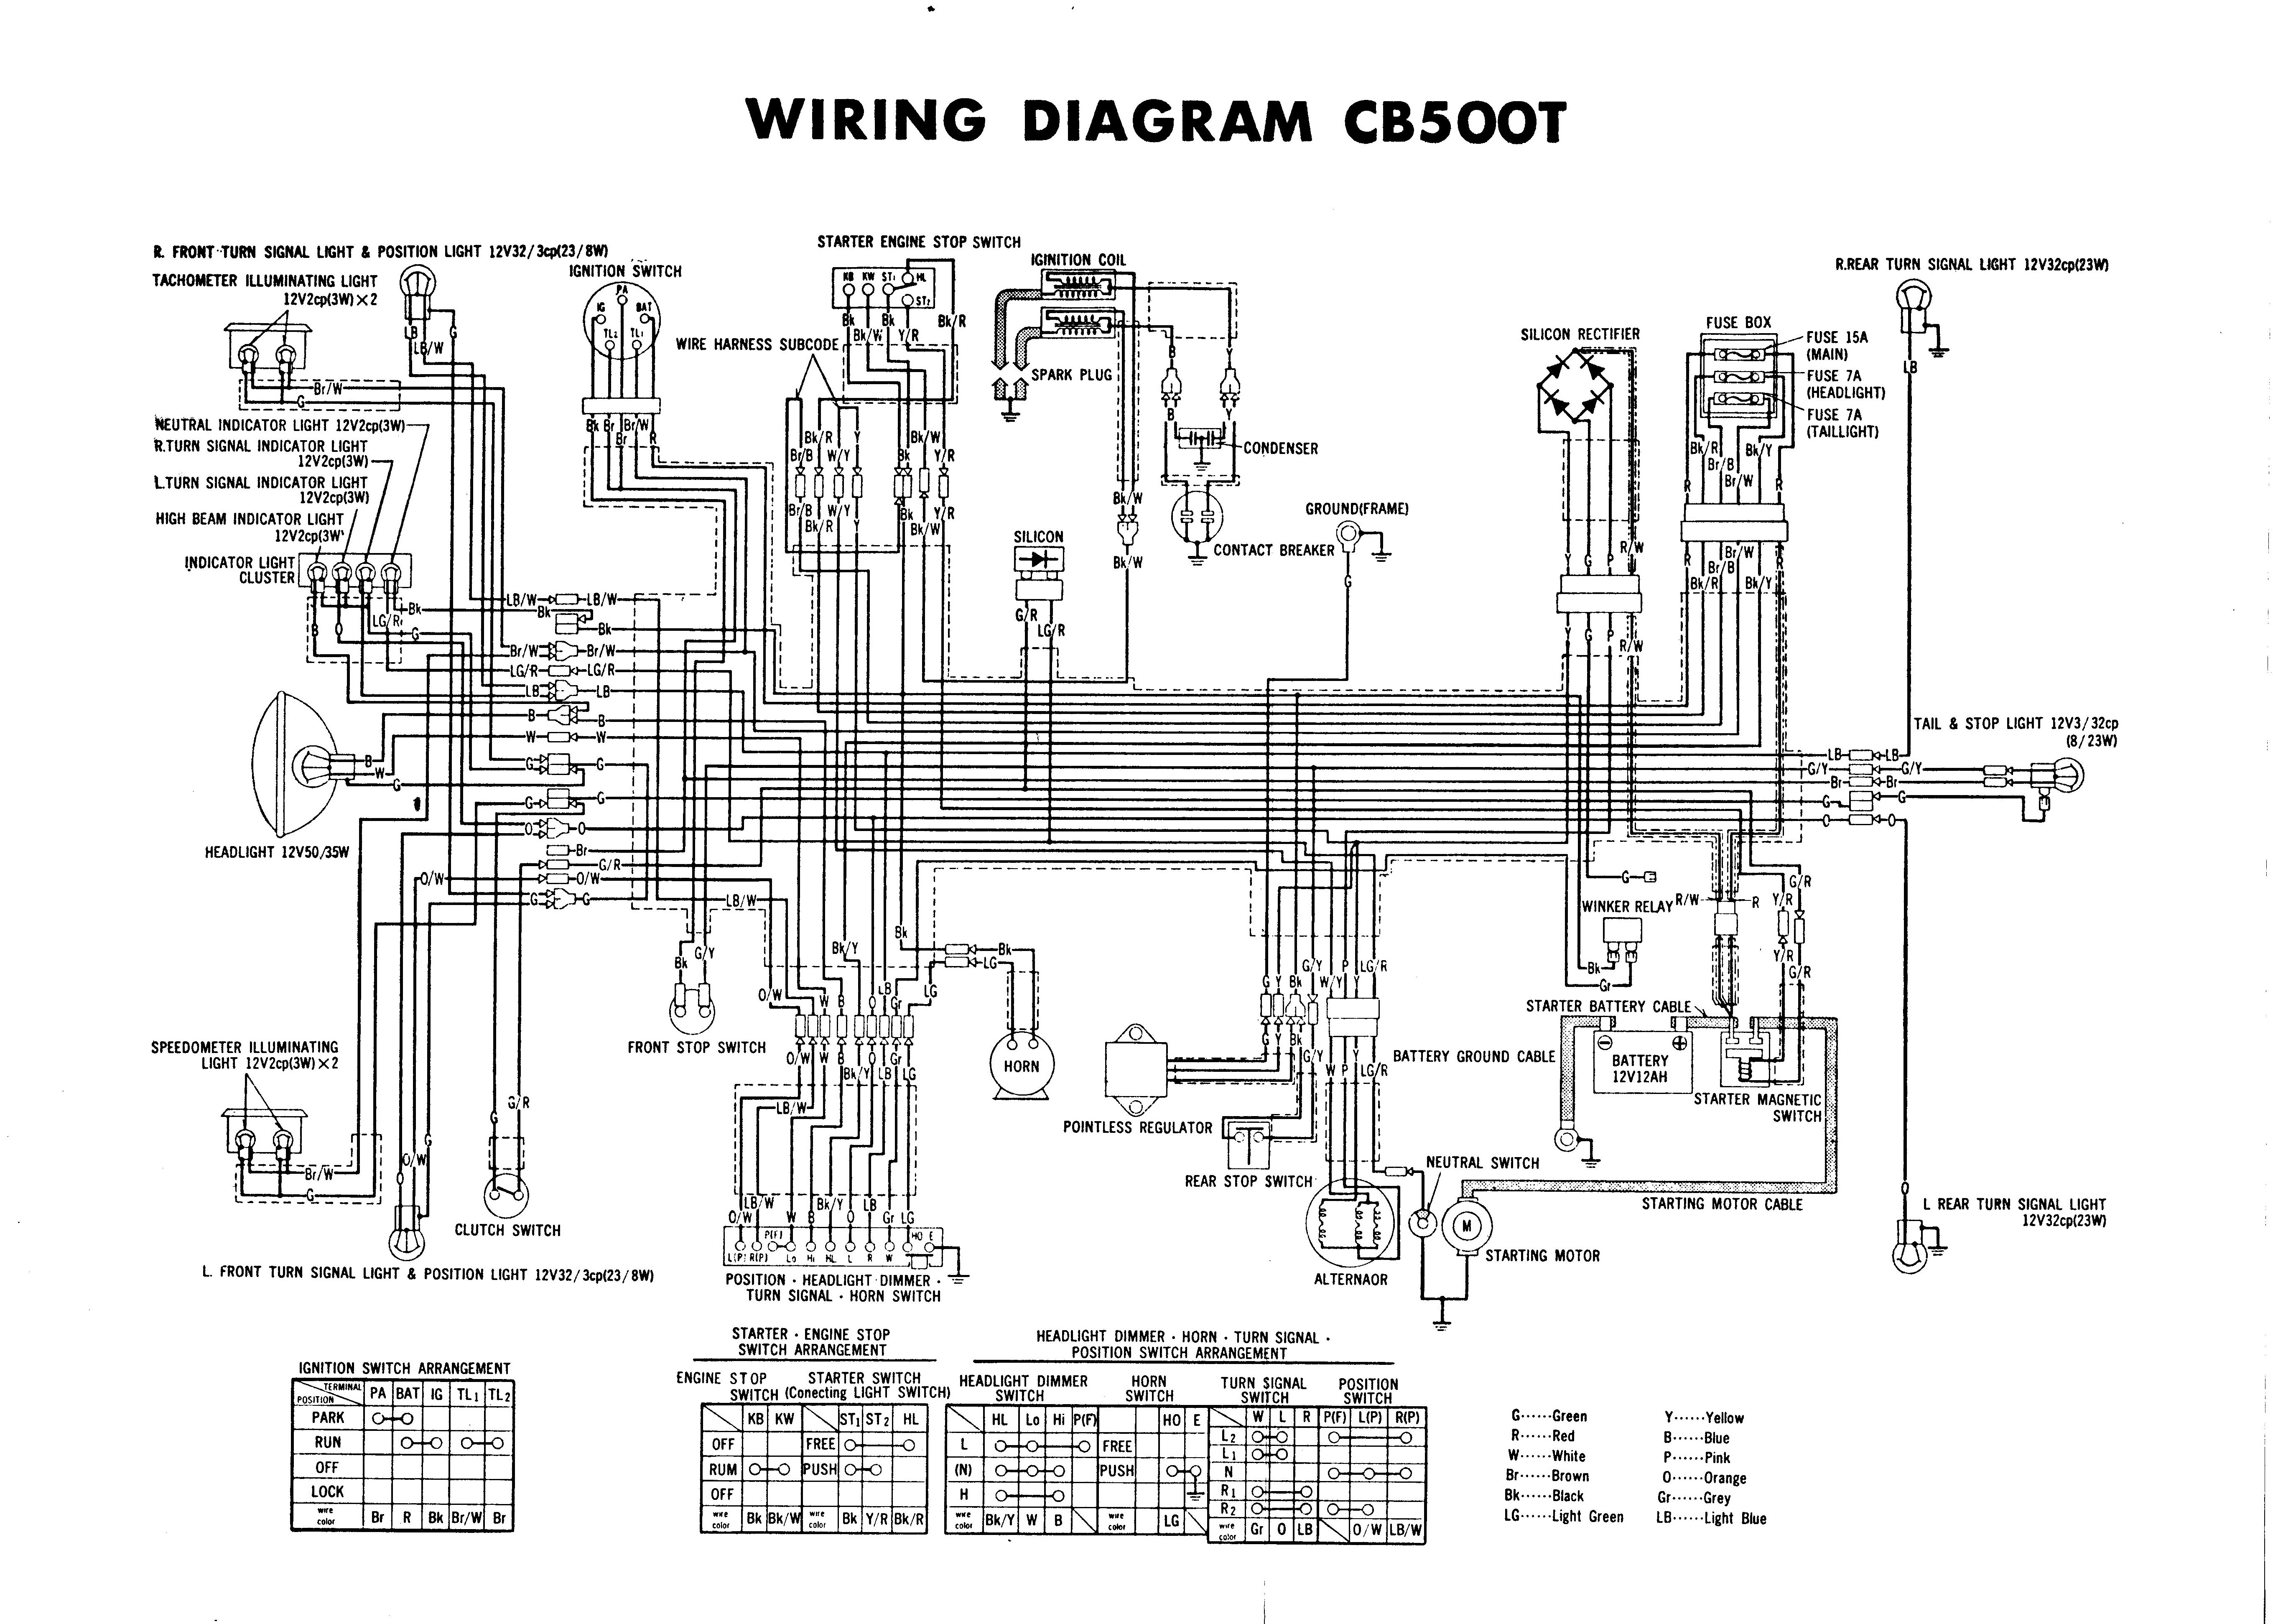 1973 Fiat Wiring Diagram • Wiring Diagram For Free